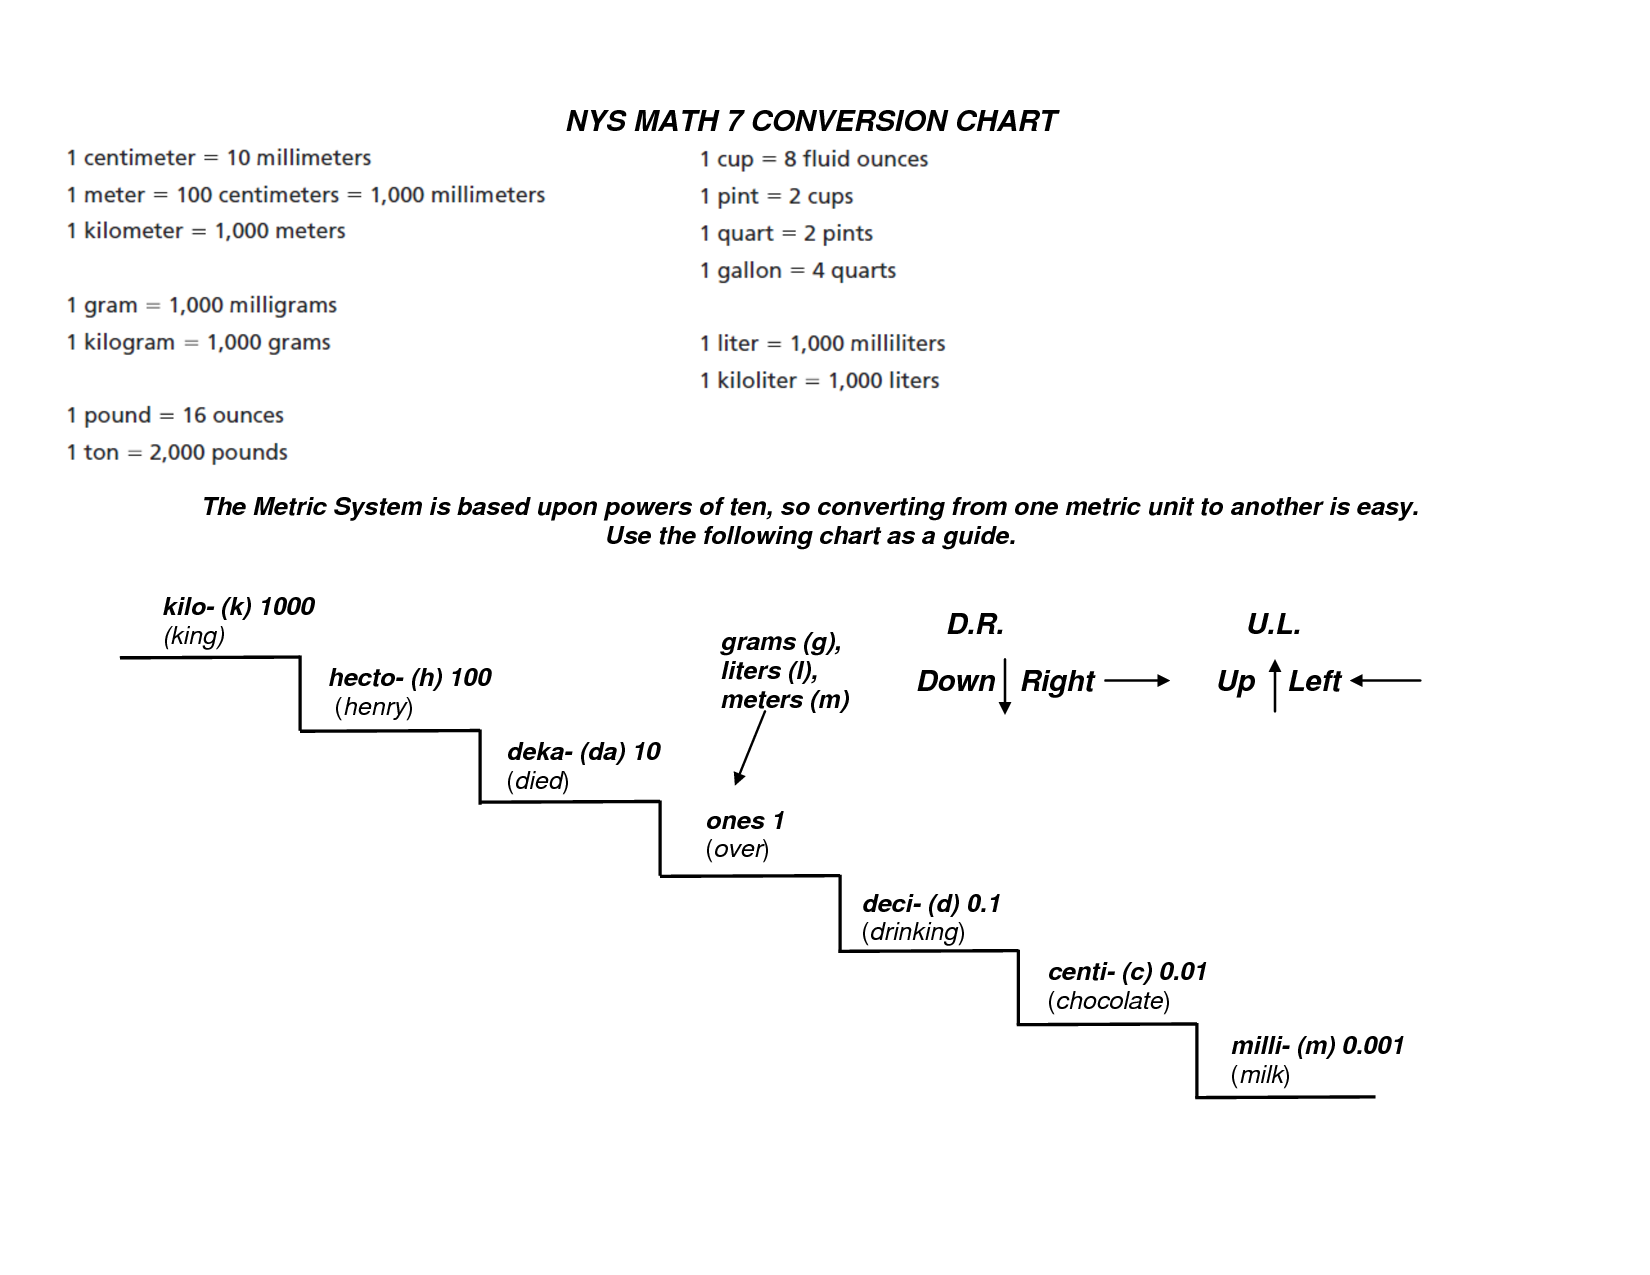 Metric system chart metric system chart table the metric metric system chart metric system chart table the metric system is based upon nvjuhfo Images